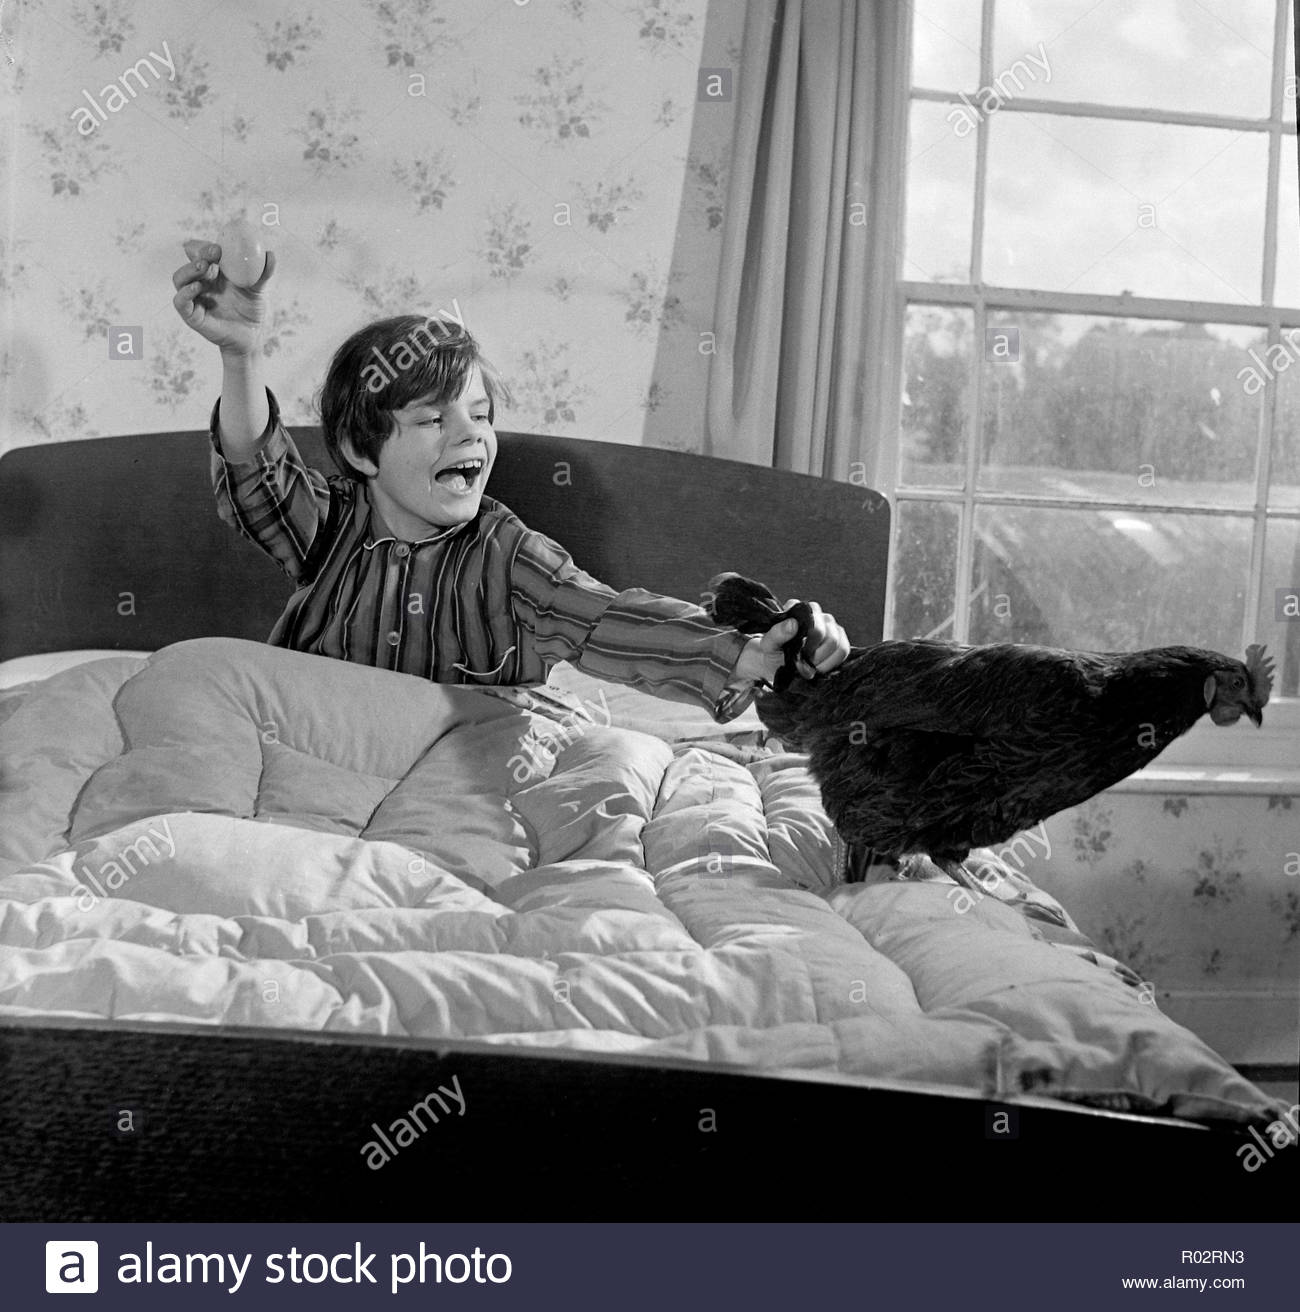 Vintage b&w photograph of boy with pet hen that laid eggs in his bed. - Stock Image